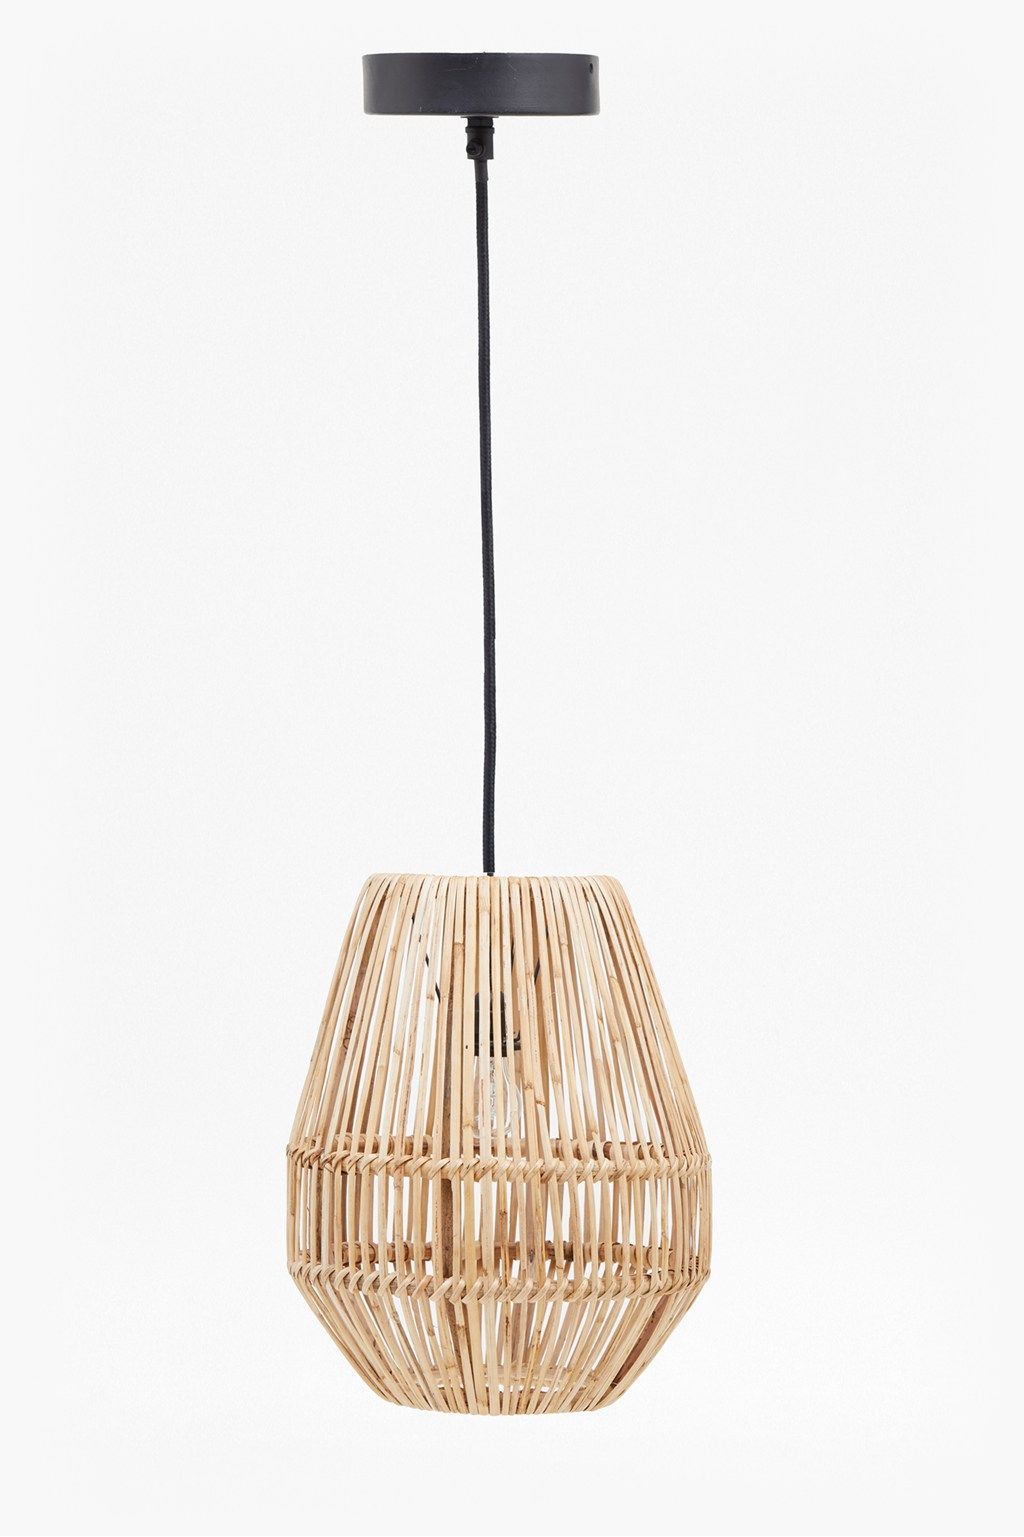 Rattan pendant light loading images